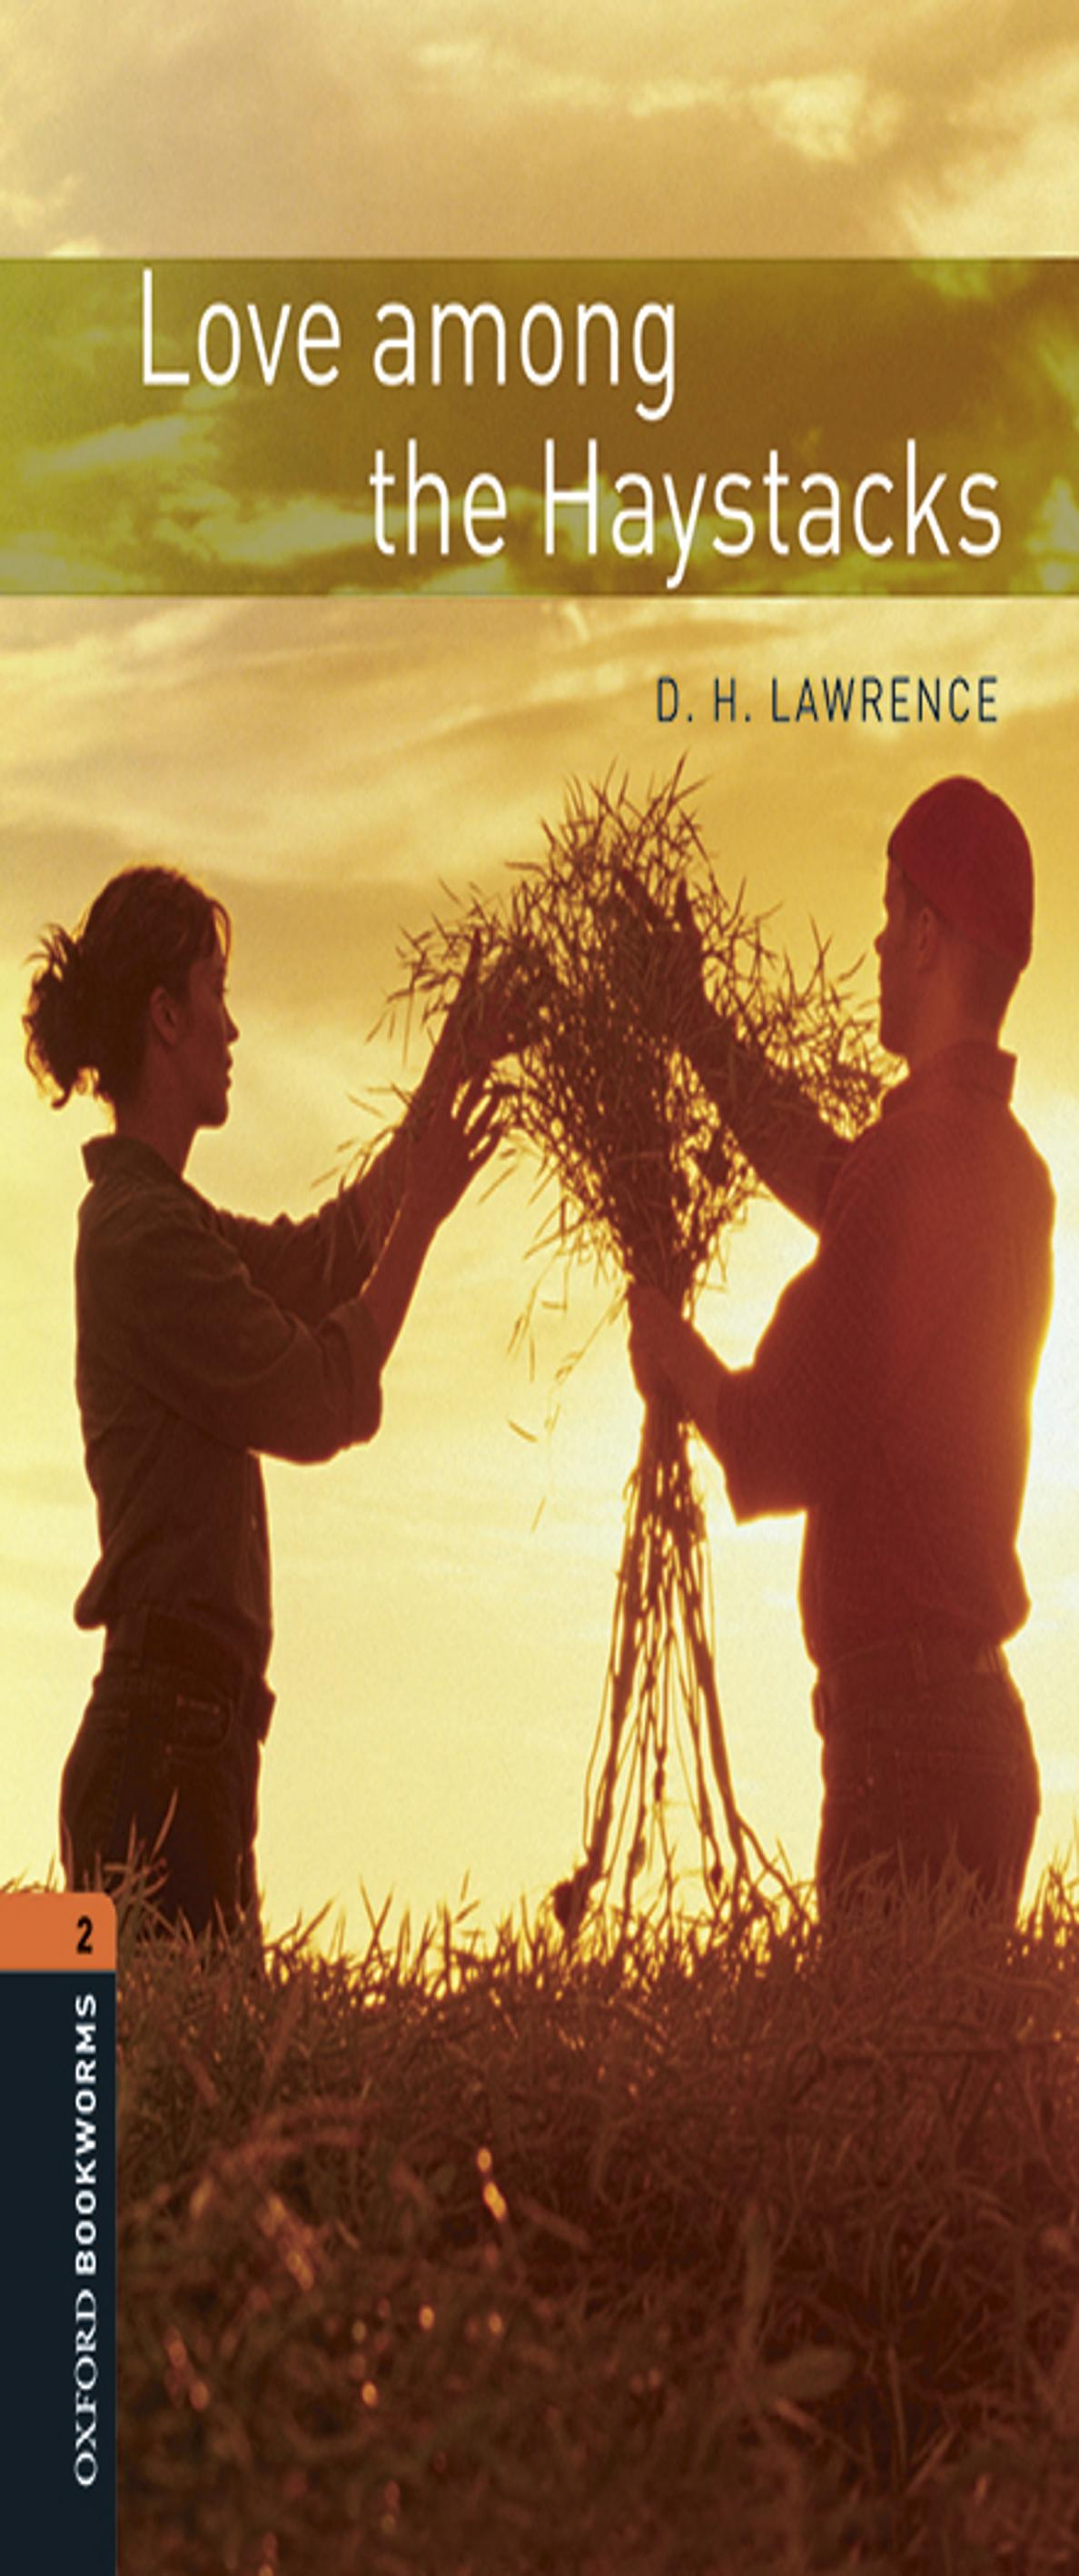 LOVE AMONG THE HAYSTACKS + Audio Download - OBL 2